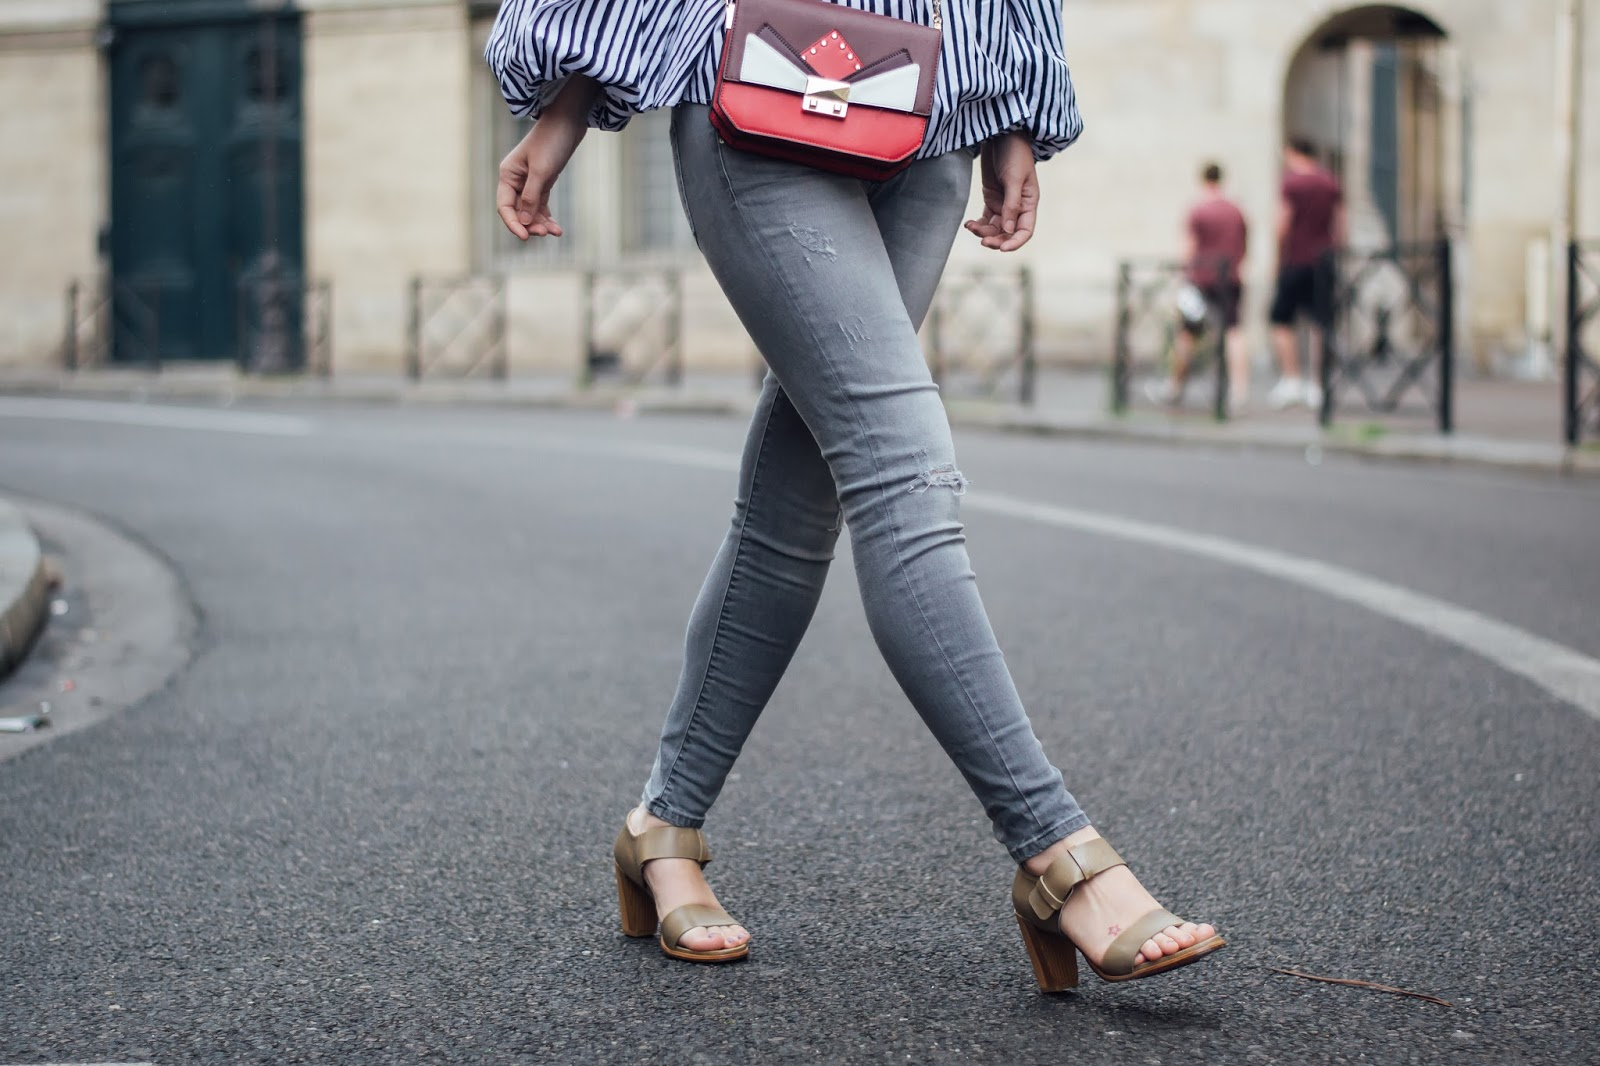 parisian fashion blogger, chic parisian style, look of the day, outfit inspiration, meet me in paree, spring style